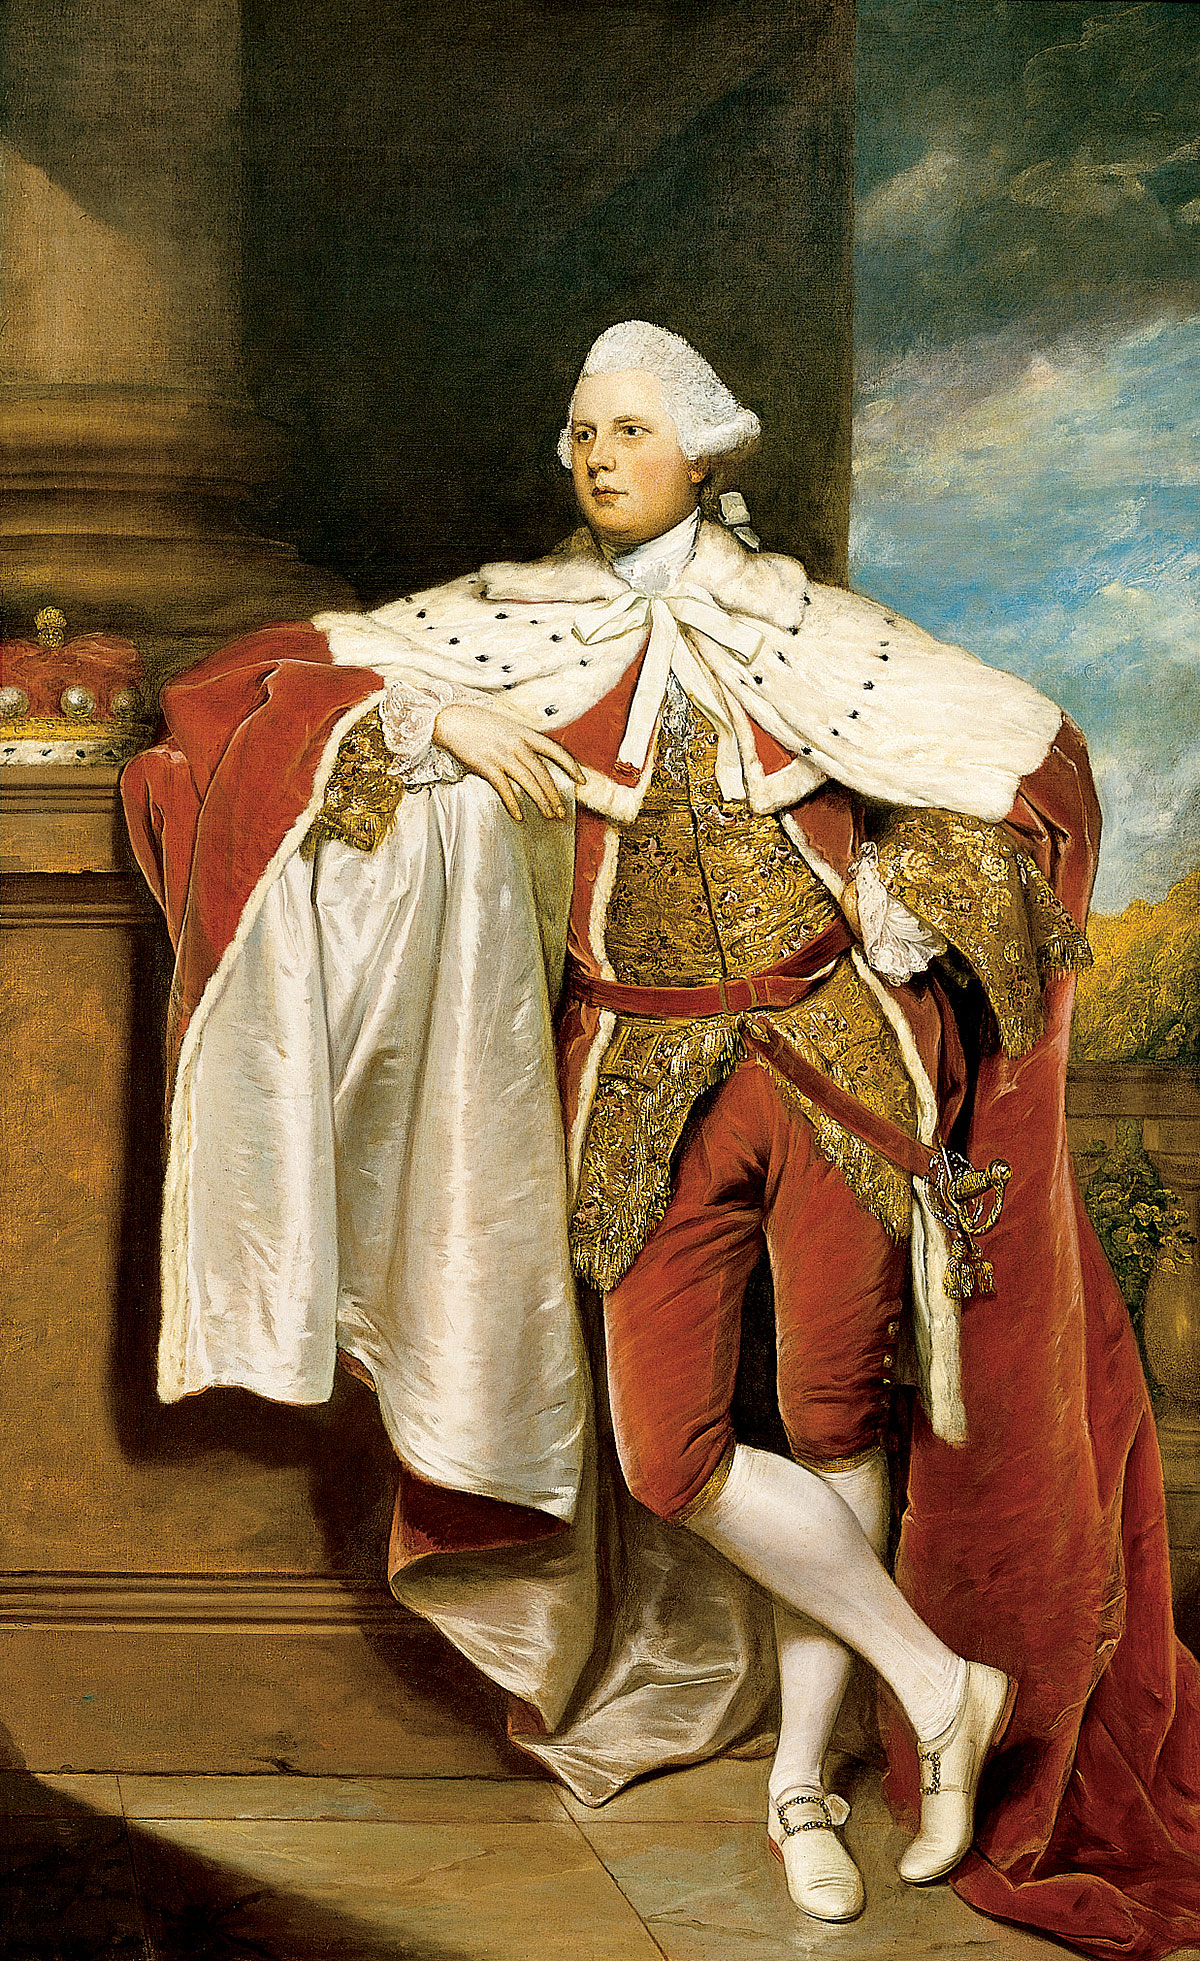 This image shows the portrait of Henry, 8th Lord Arundell of Wardour, painted by Sir Joshua Reynolds around 1764-1767.